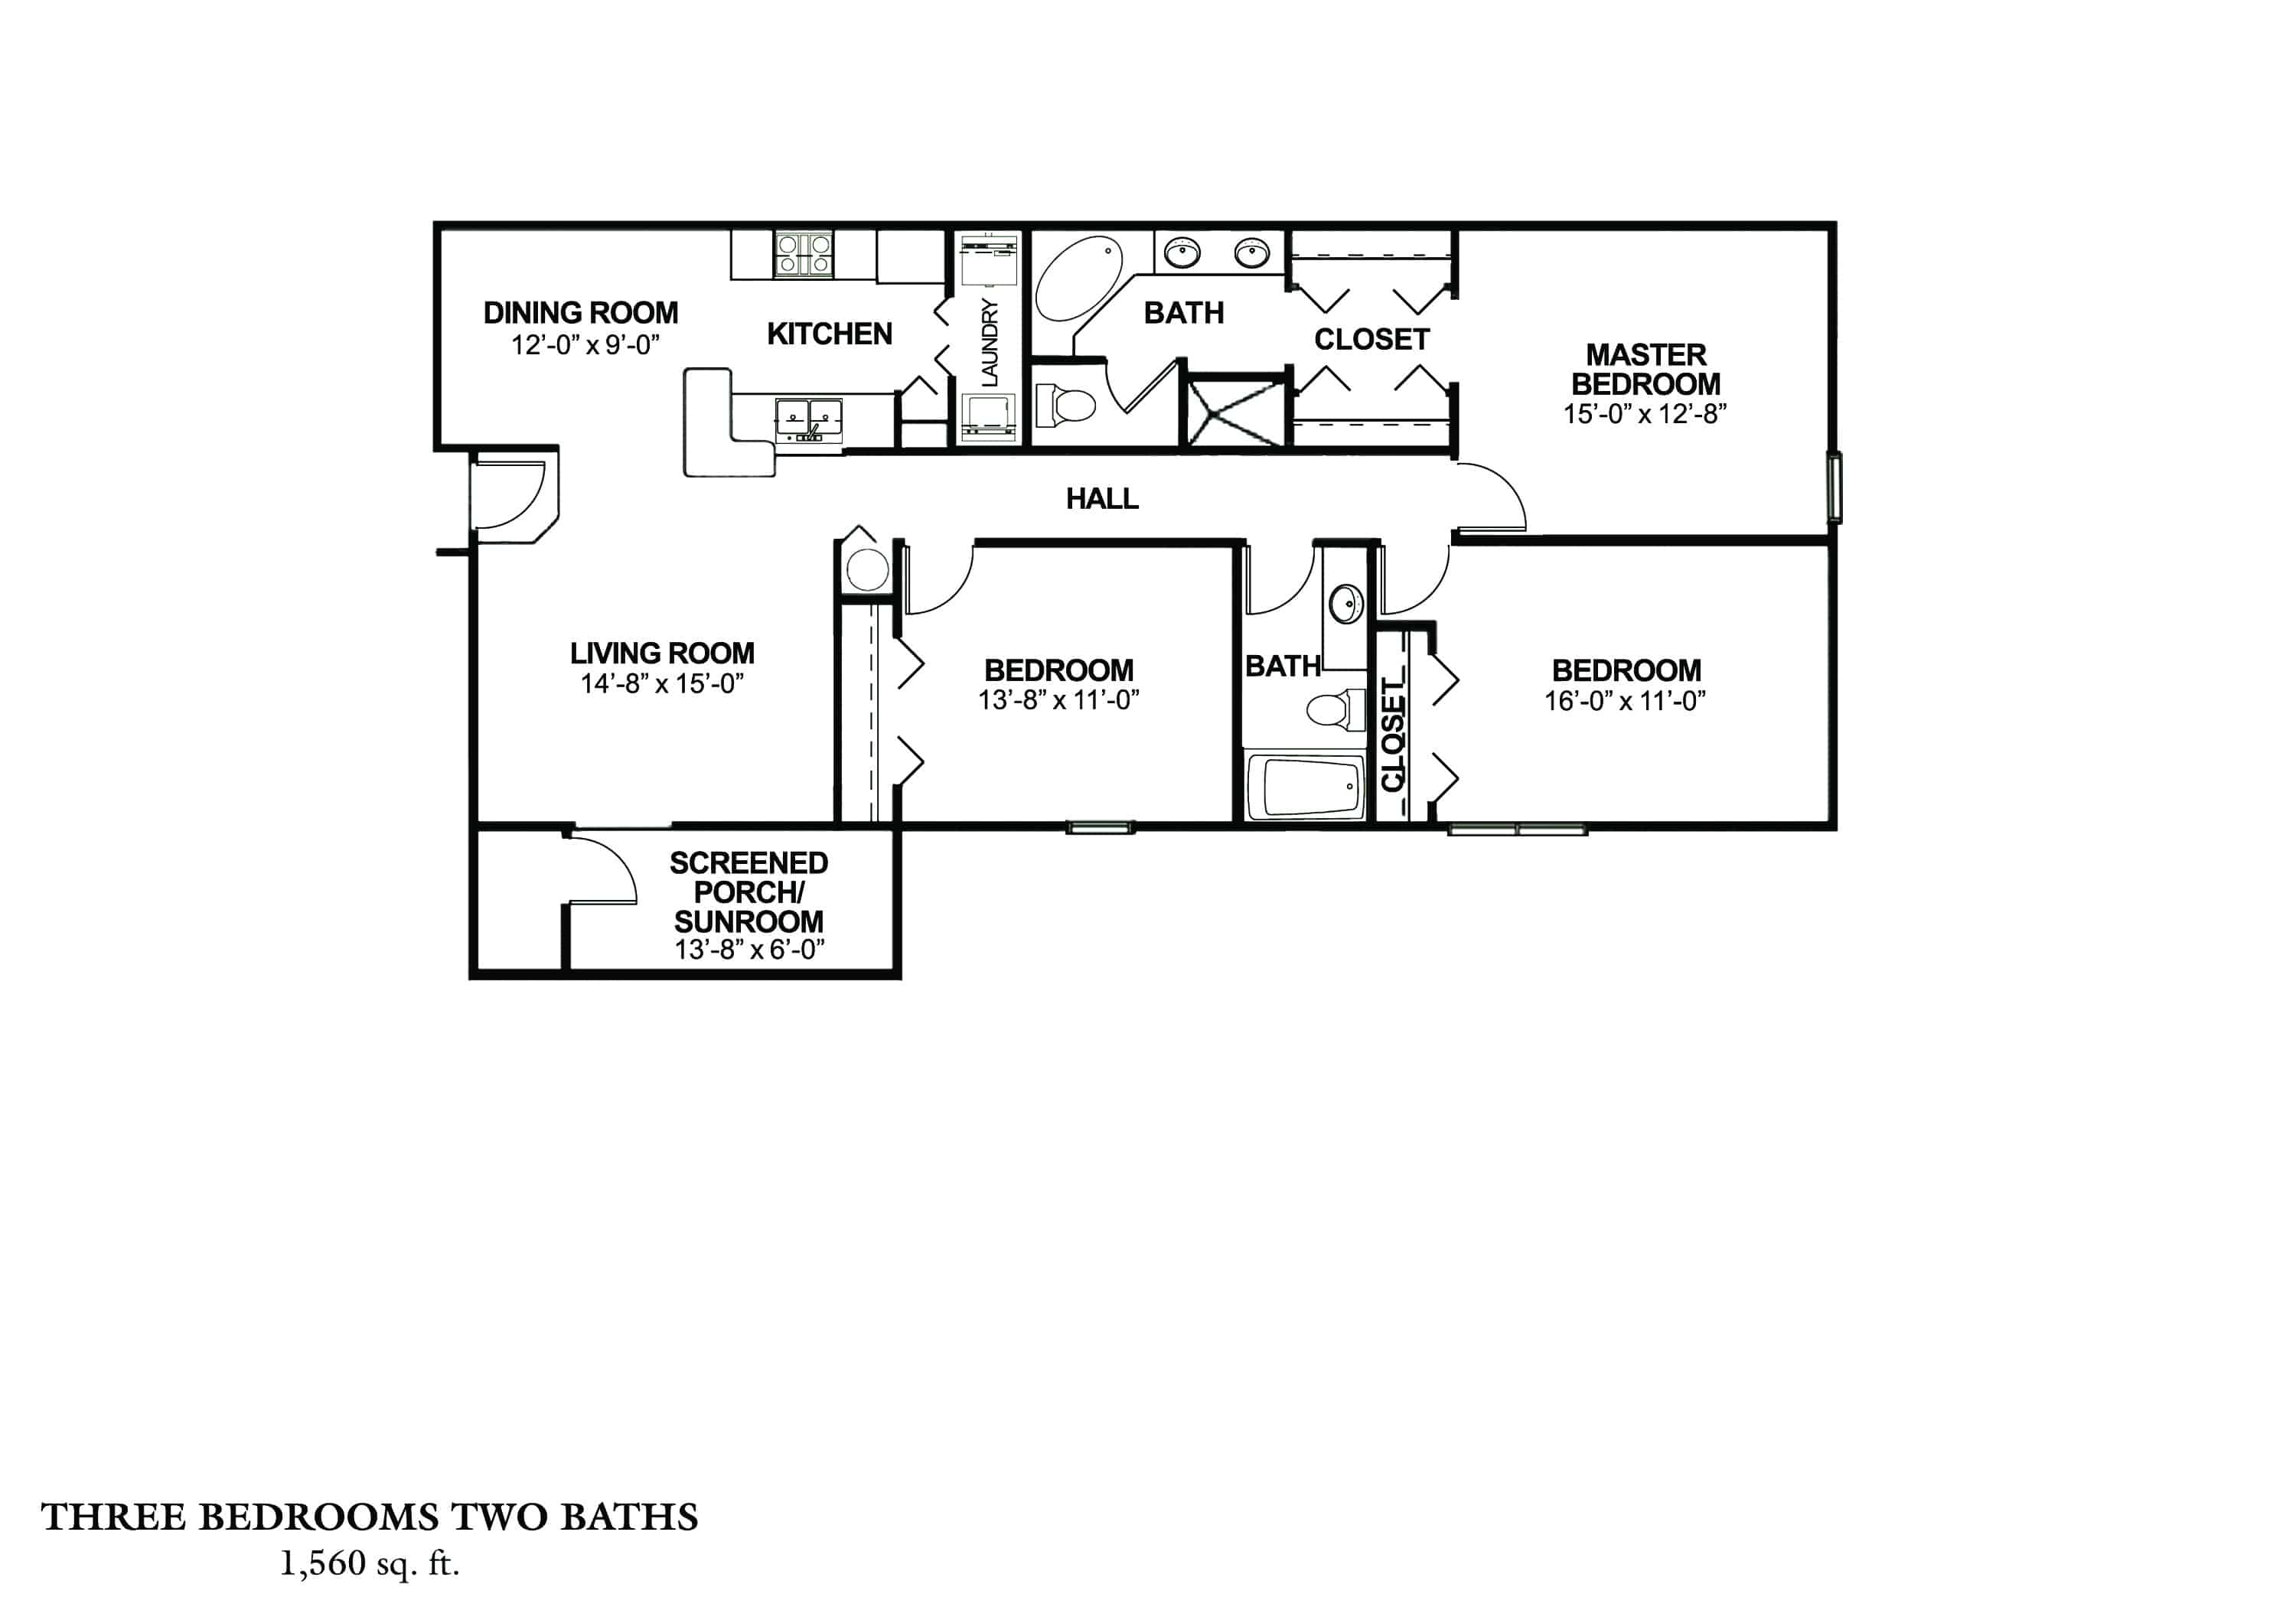 Three Bedroom - Phase I Approx. 1,560 sq. ft. Beds 3 Baths 2 in Greystone's Columbus GA Apartments